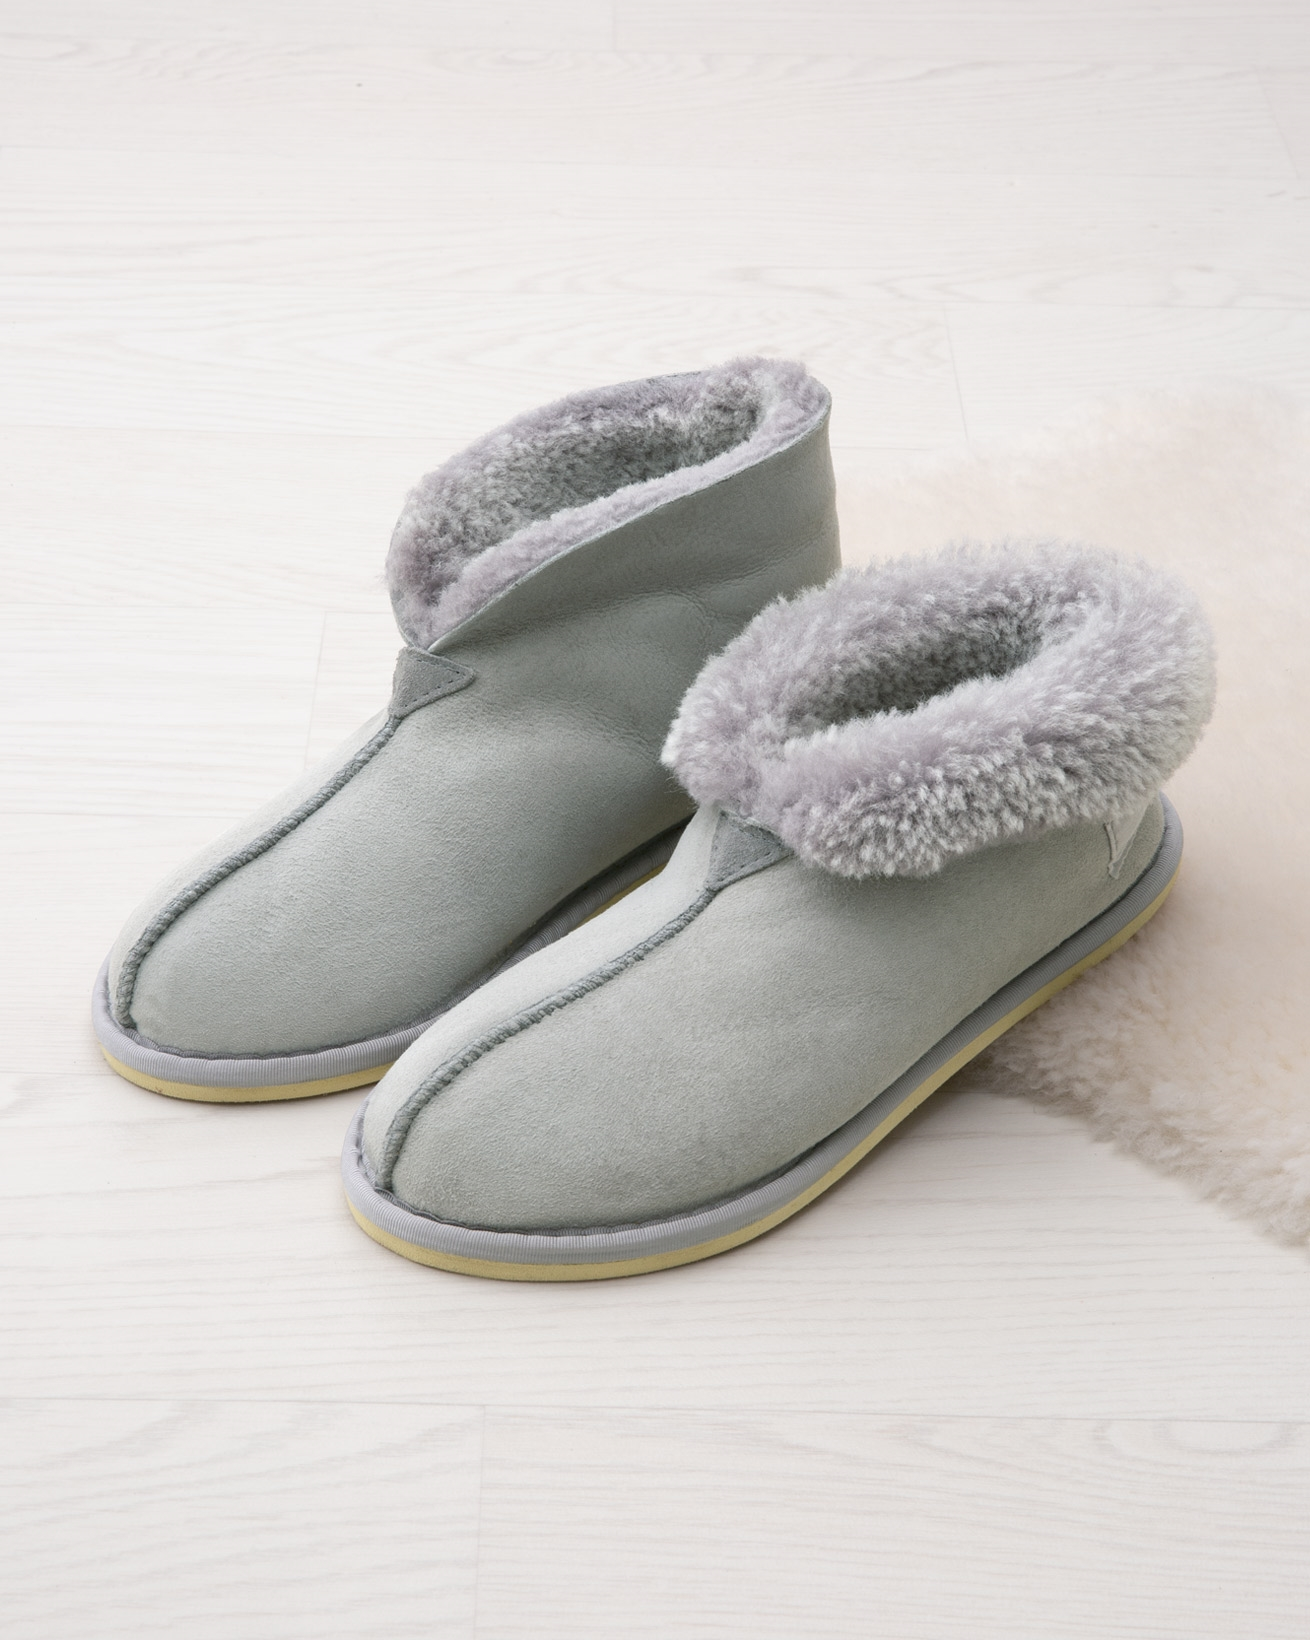 2100-bootee-slipper-icon-pearl-grey-web-lfs-opt2.jpg